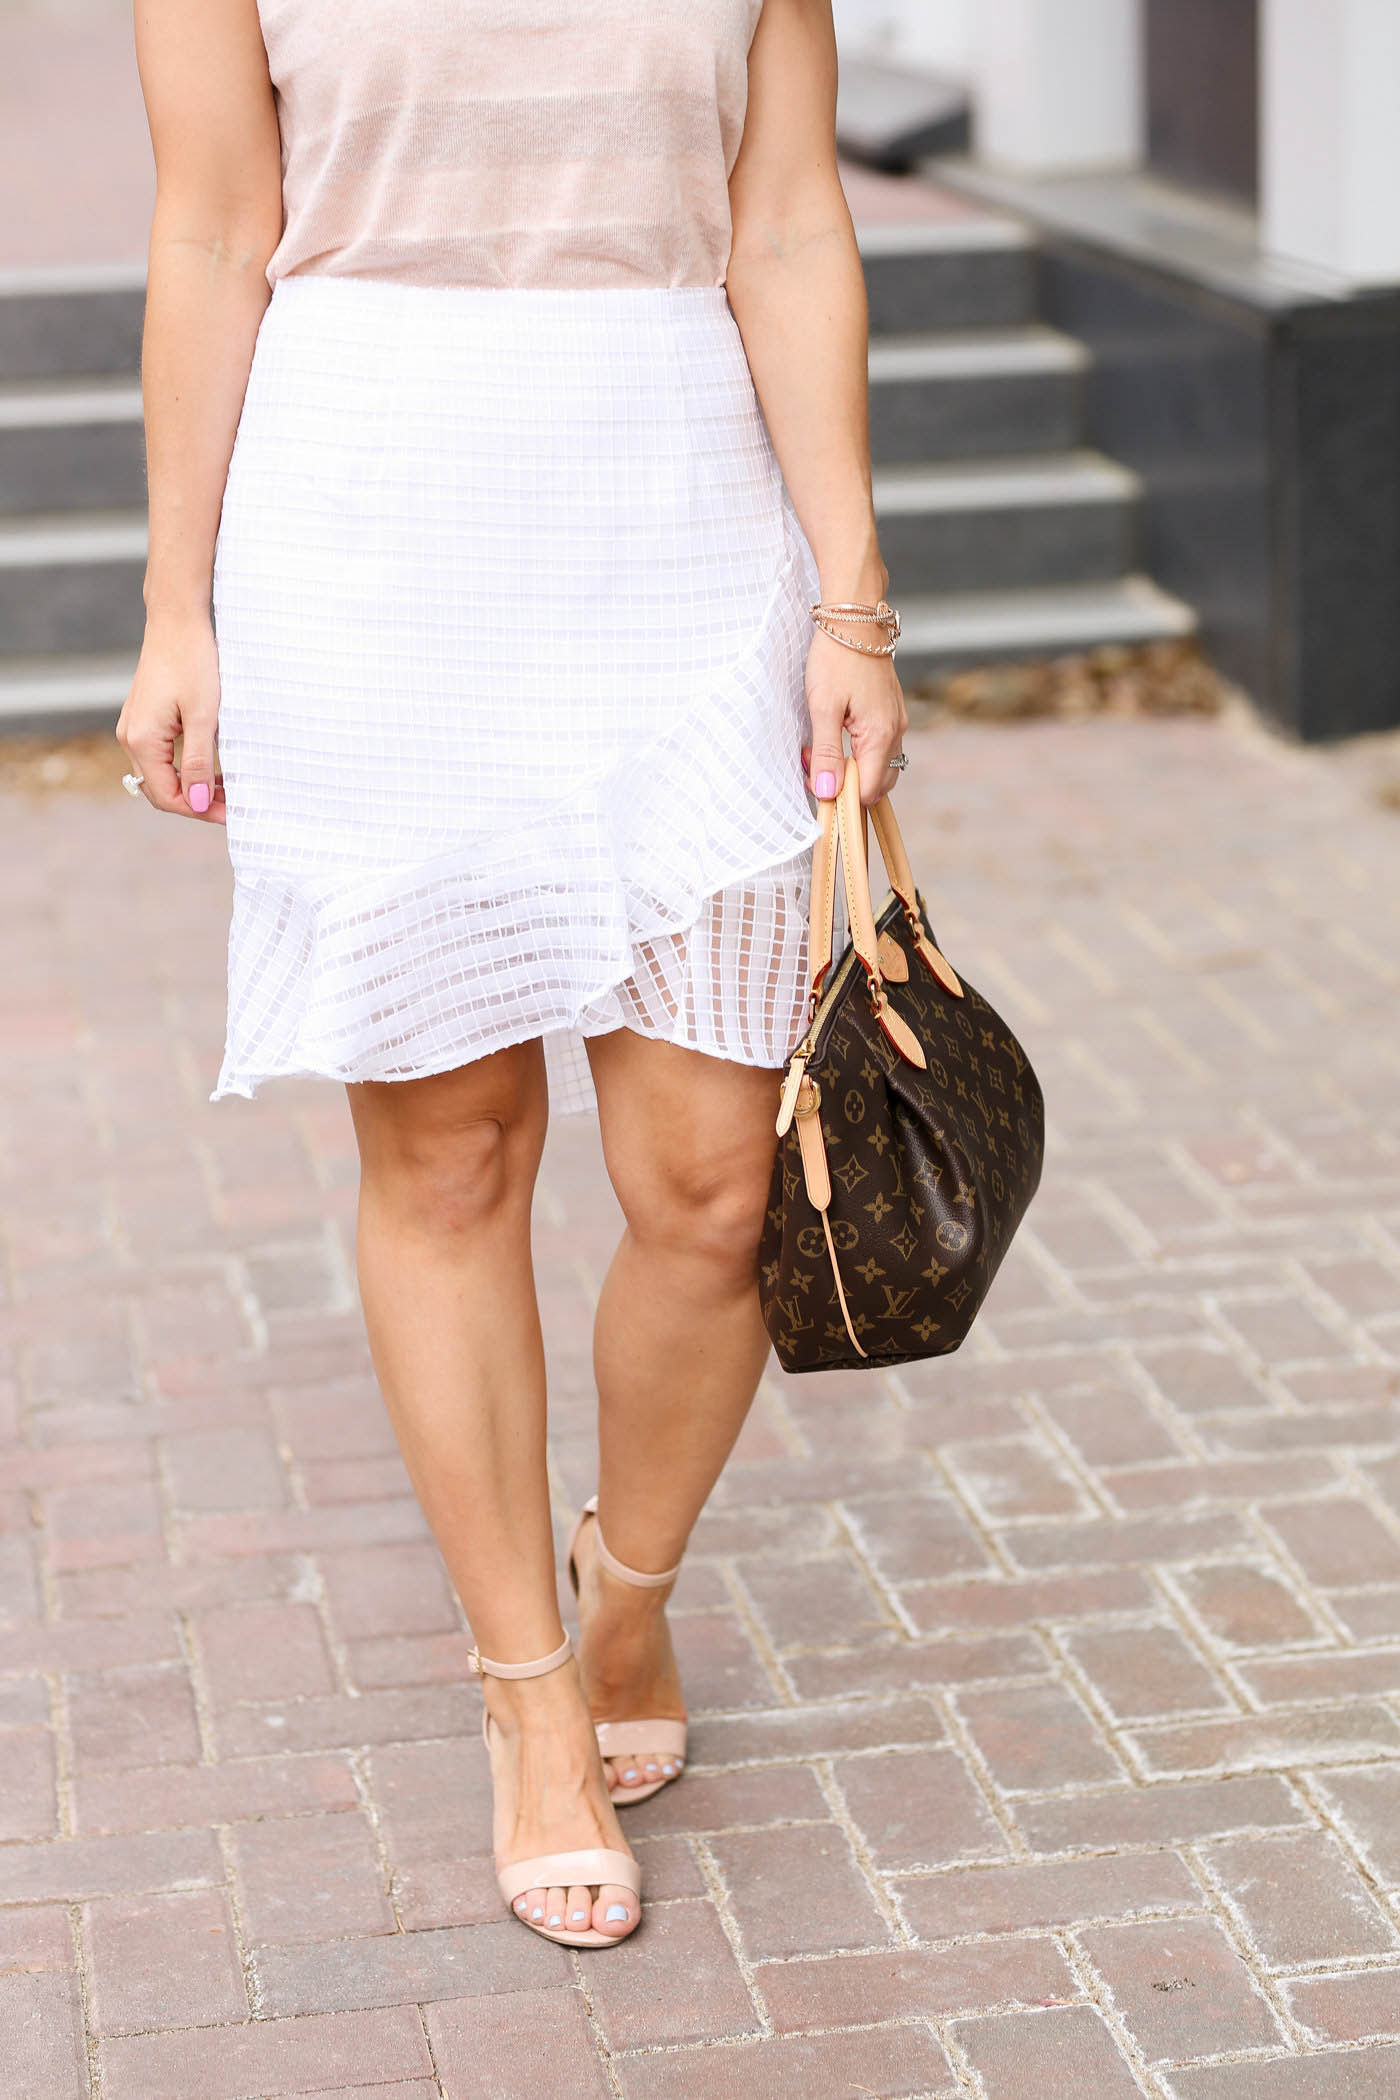 bp luminate heels, white eyelet skirt